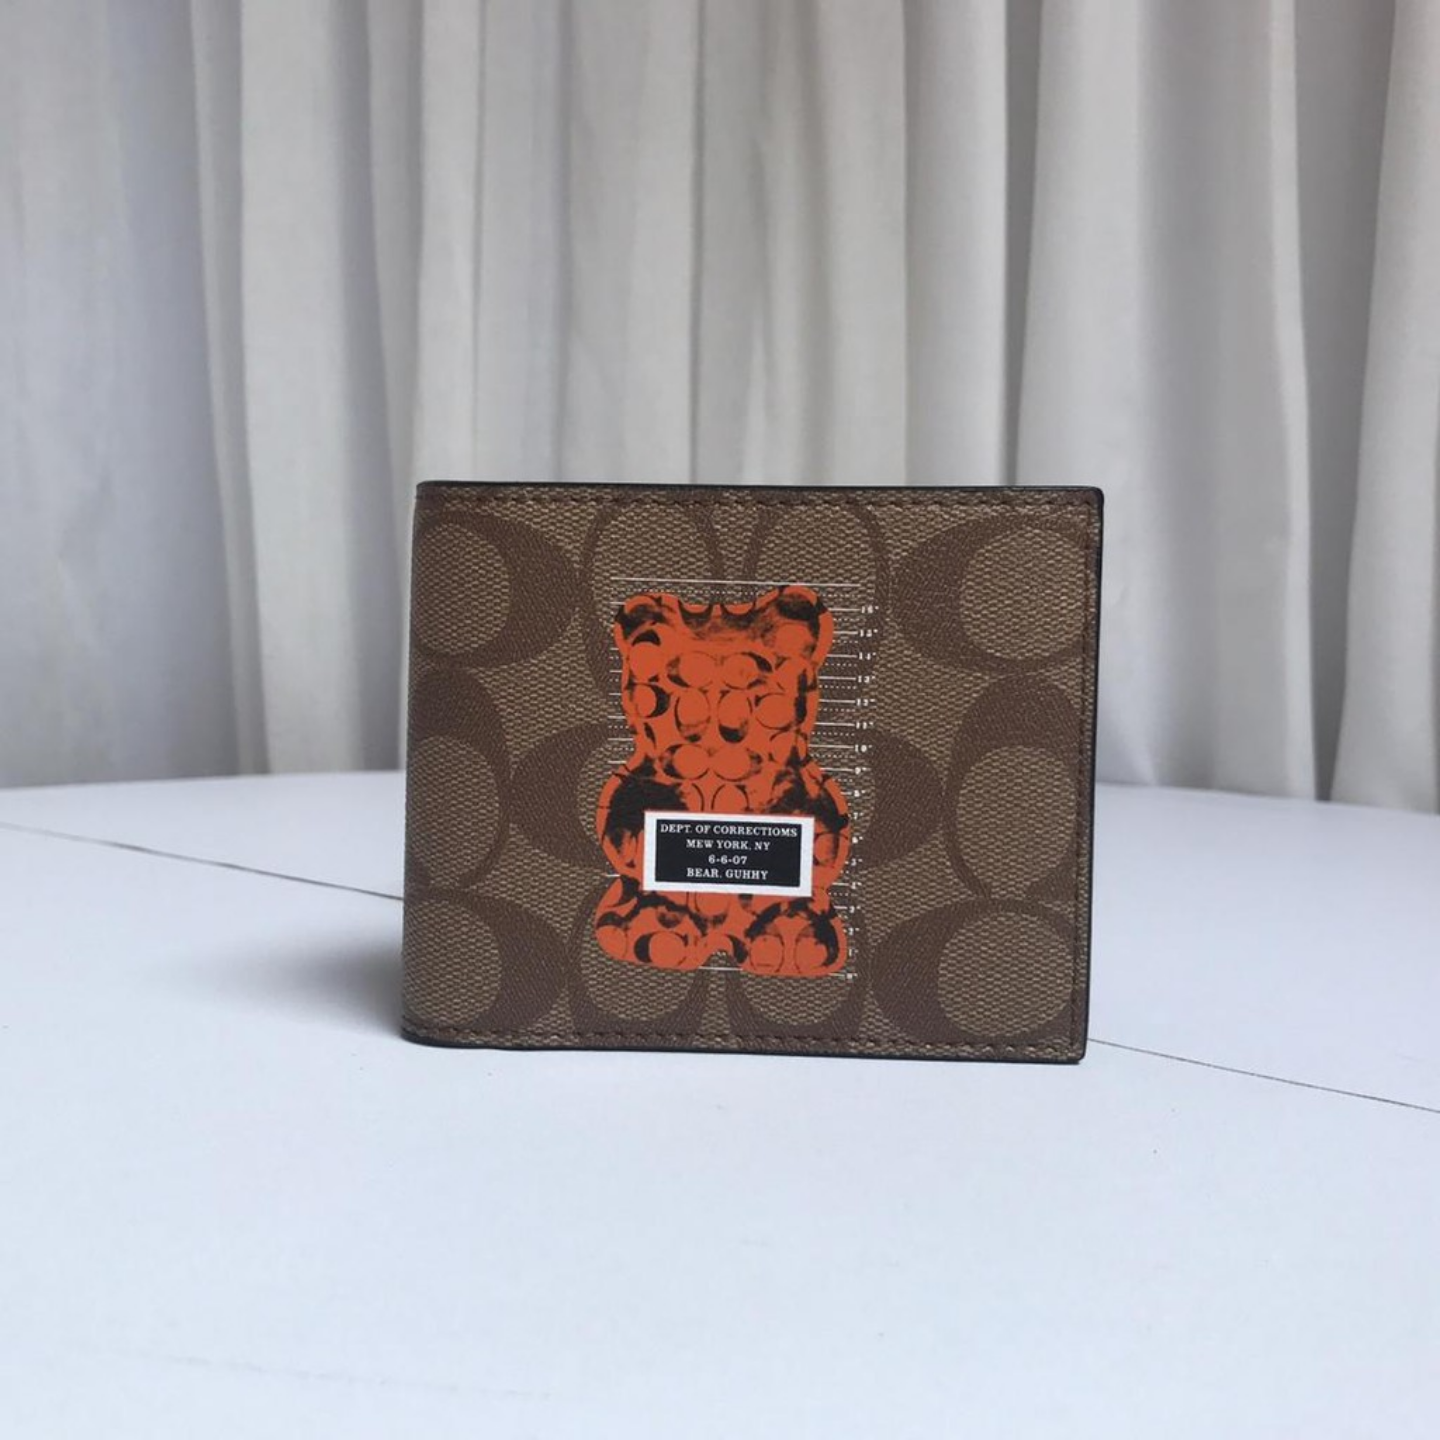 The new coach F76857 mens short brown bear wallet.